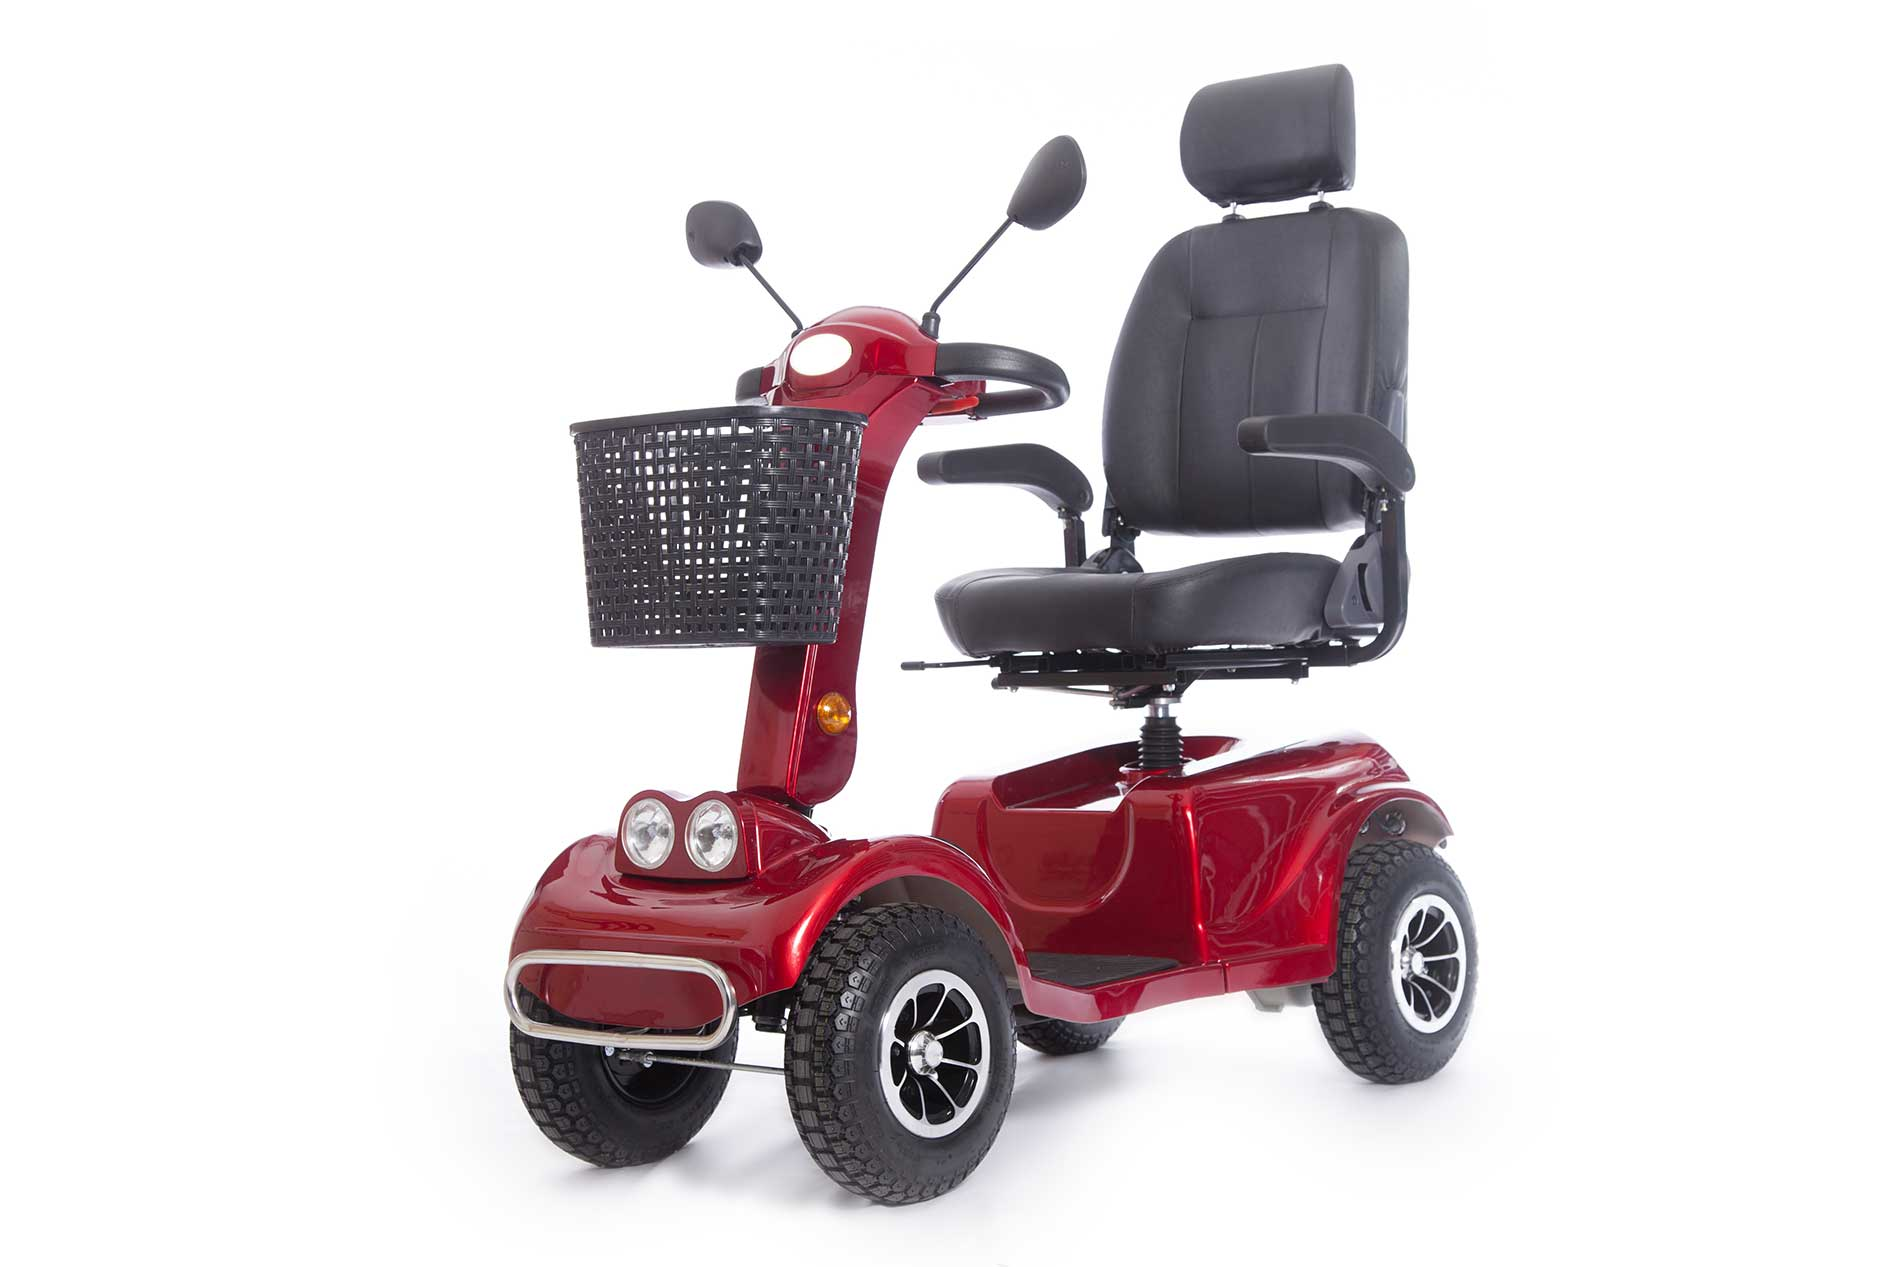 featuredimage-Mobility-Product-Rentals